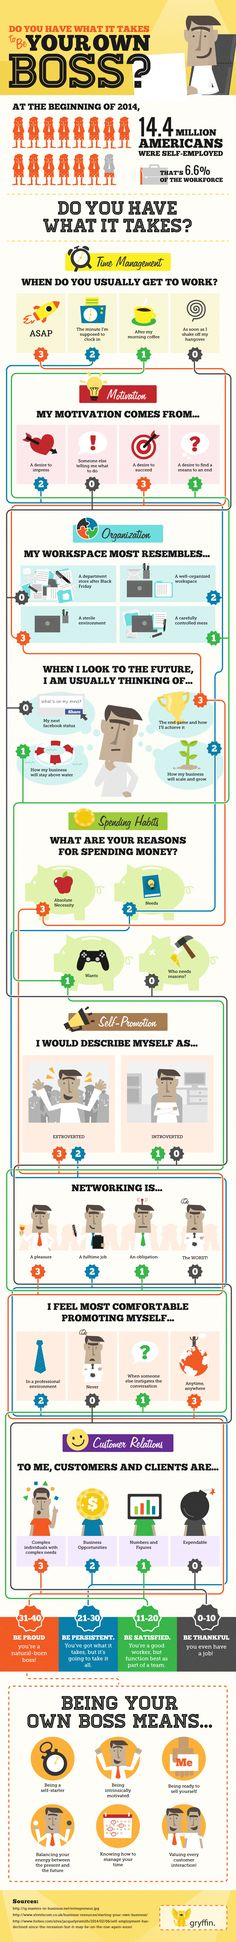 How to Be Your Own Boss | #INFOGRAPHIC  Being your own boss is something most people dream about from time to time. Before striking out on this journey, it is a good idea to figure out if  you have the basic habits and characteristics to be successful. Don't worry, most deficiencies can be overcome with learning or sheer willpower. See what you need to work on using the assessment in this infographic. #SMB #entrepreneurship #startup